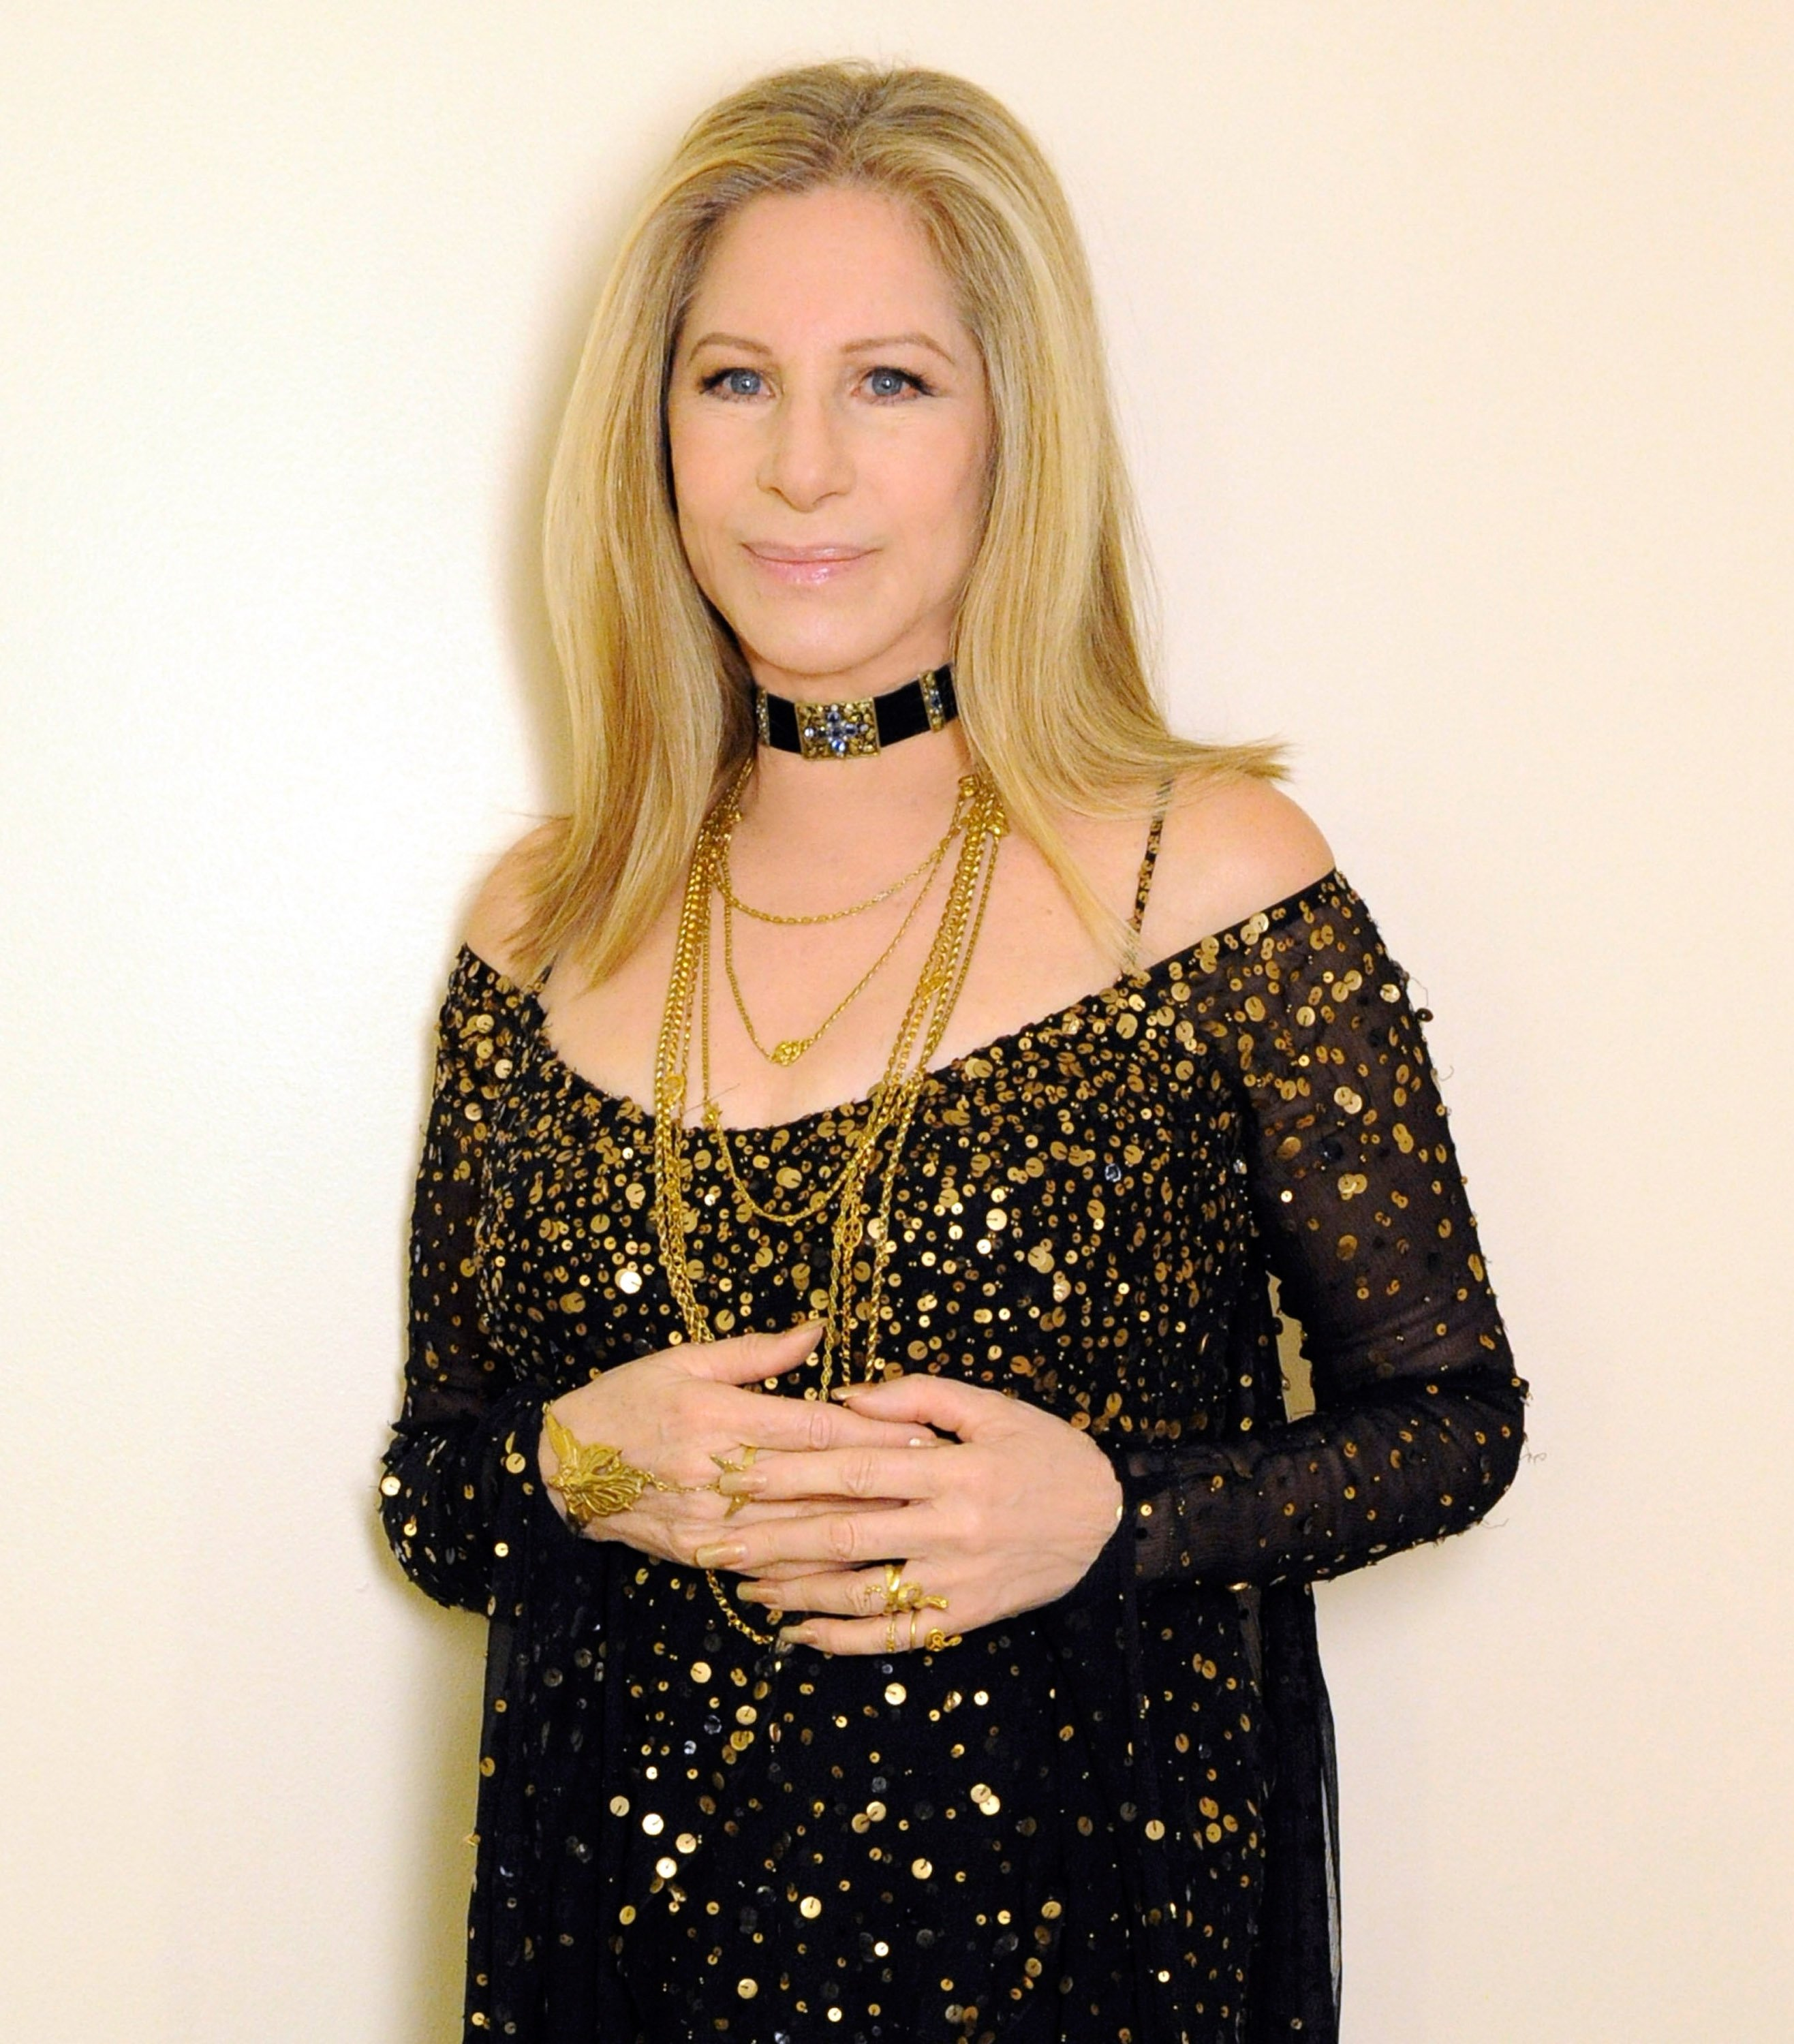 Barbra Streisand poses backstage at the 85th Annual Academy Awards at the Dolby Theatre on February 24, 2013 | Photo: GettyImages